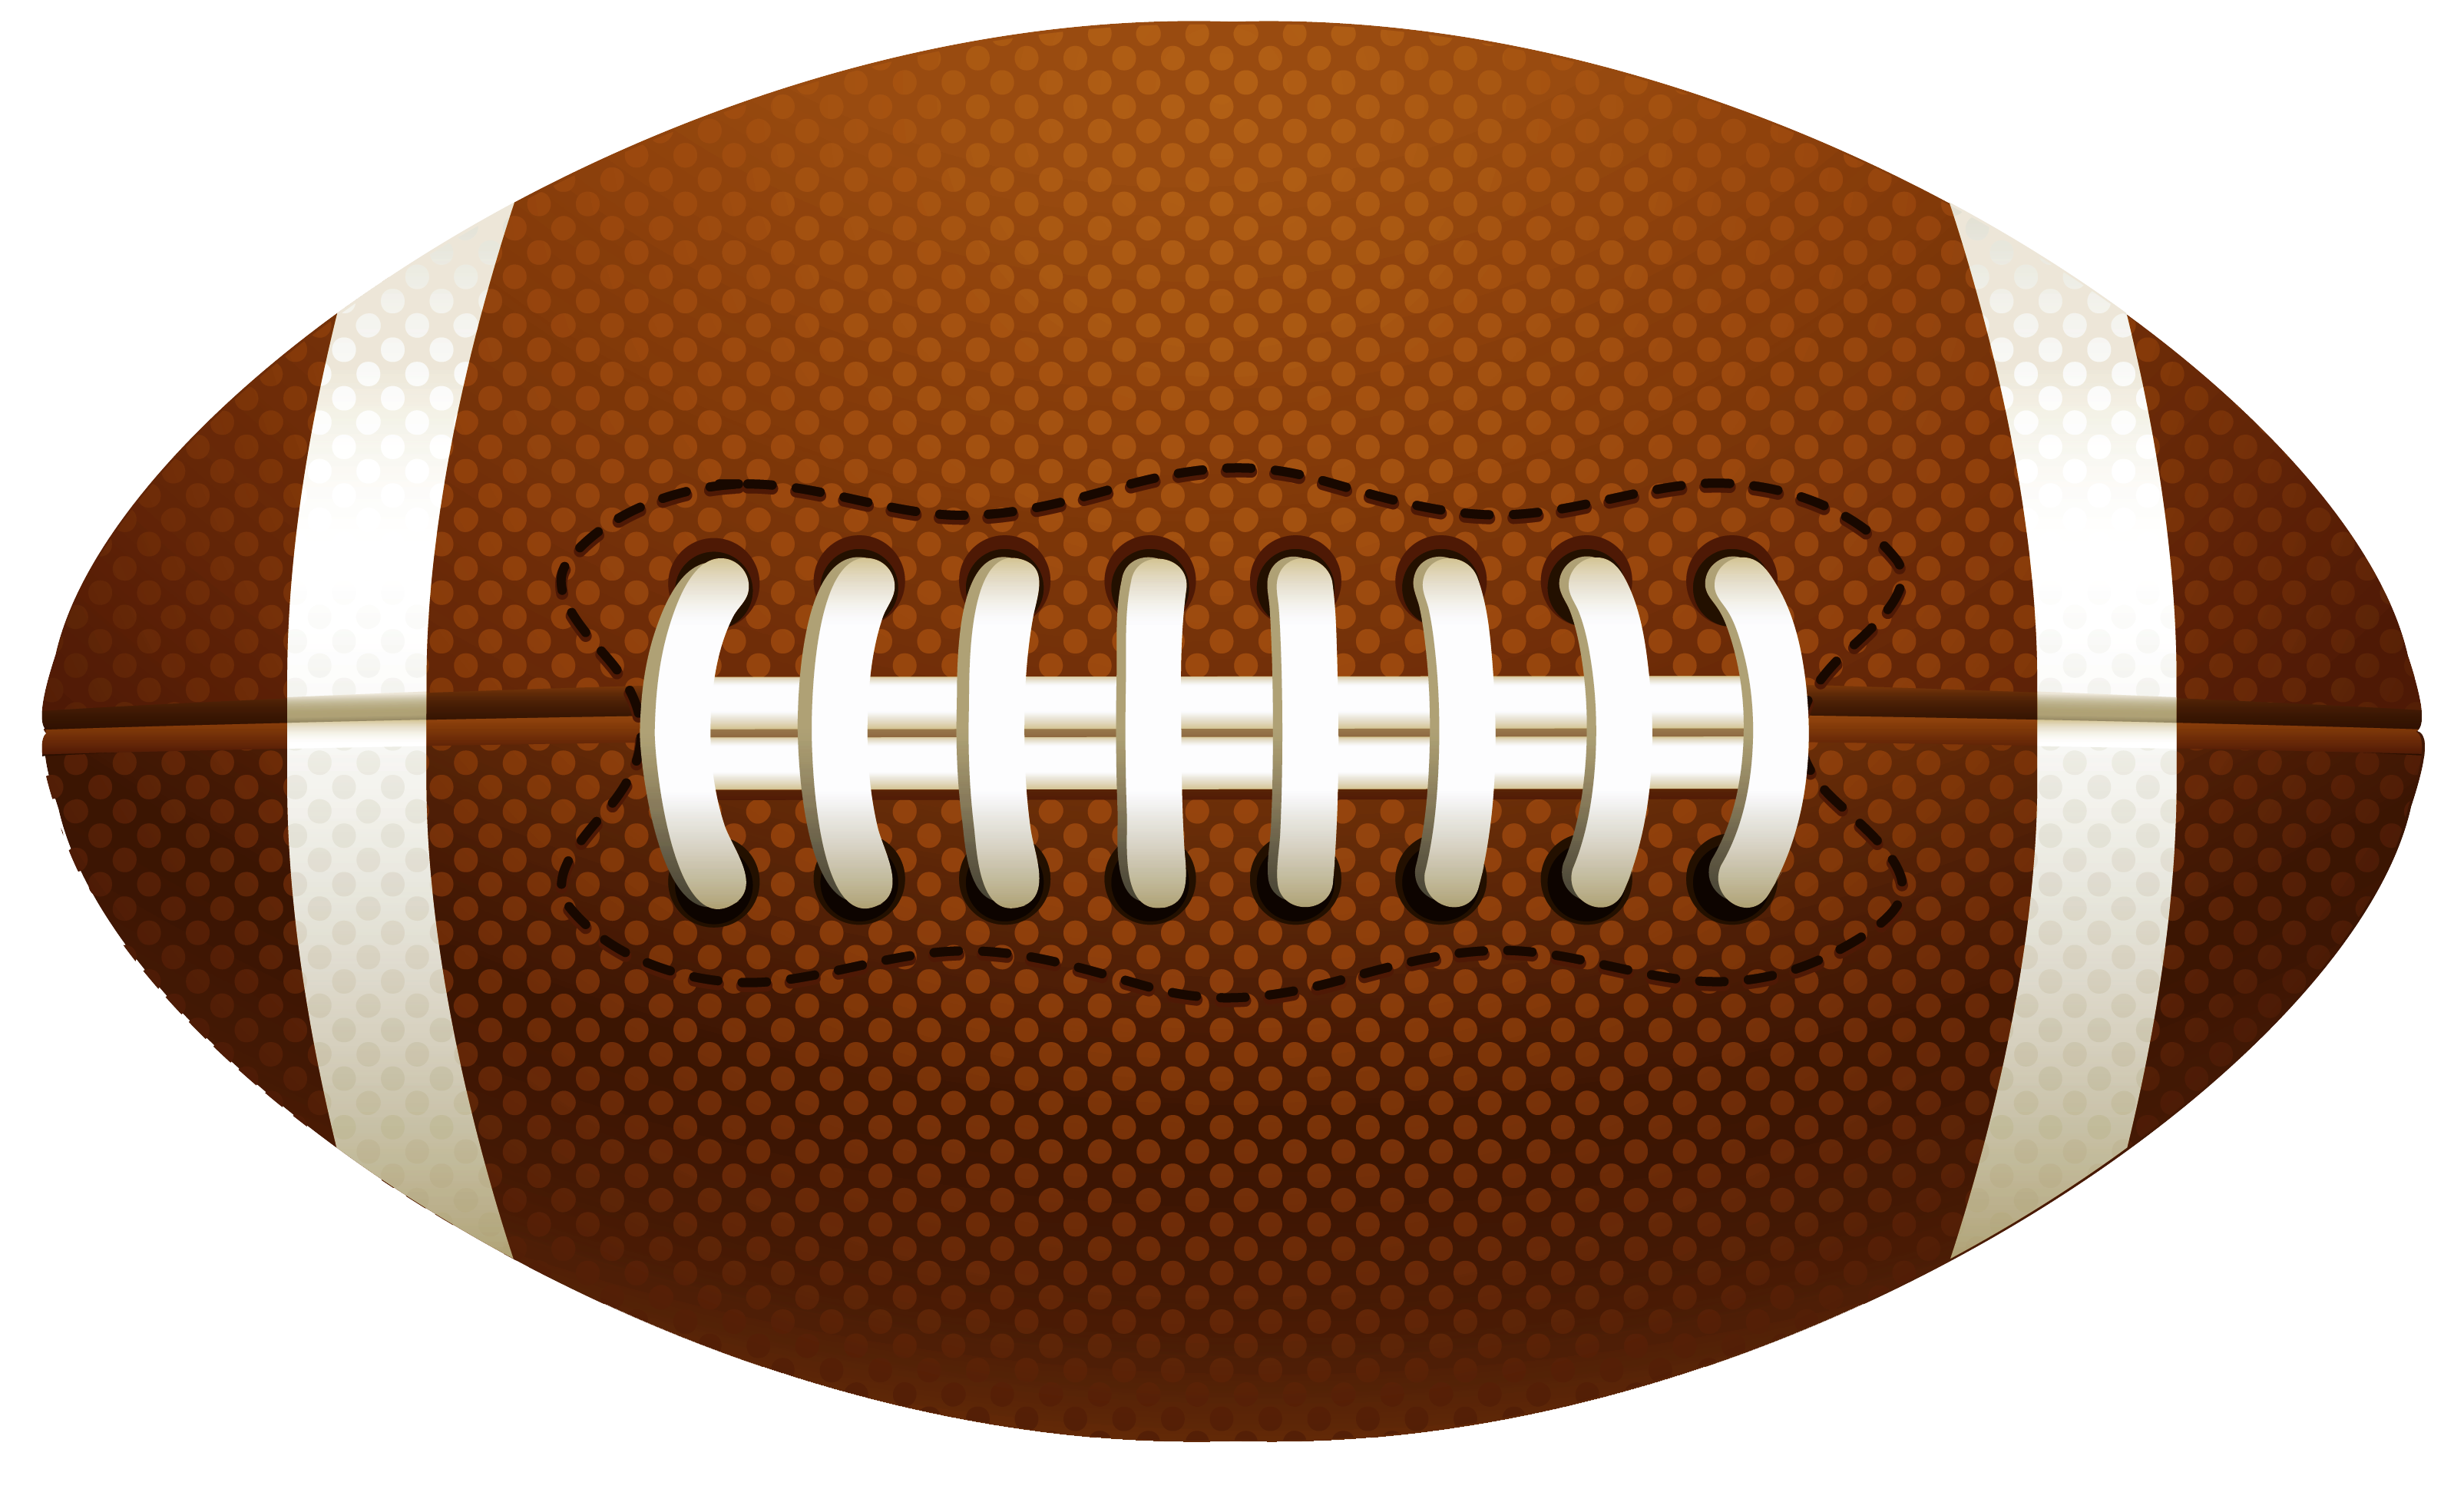 Football clipart free download image royalty free download American Football Ball PNG Vector Clipart 3209*1969 transprent Png ... image royalty free download